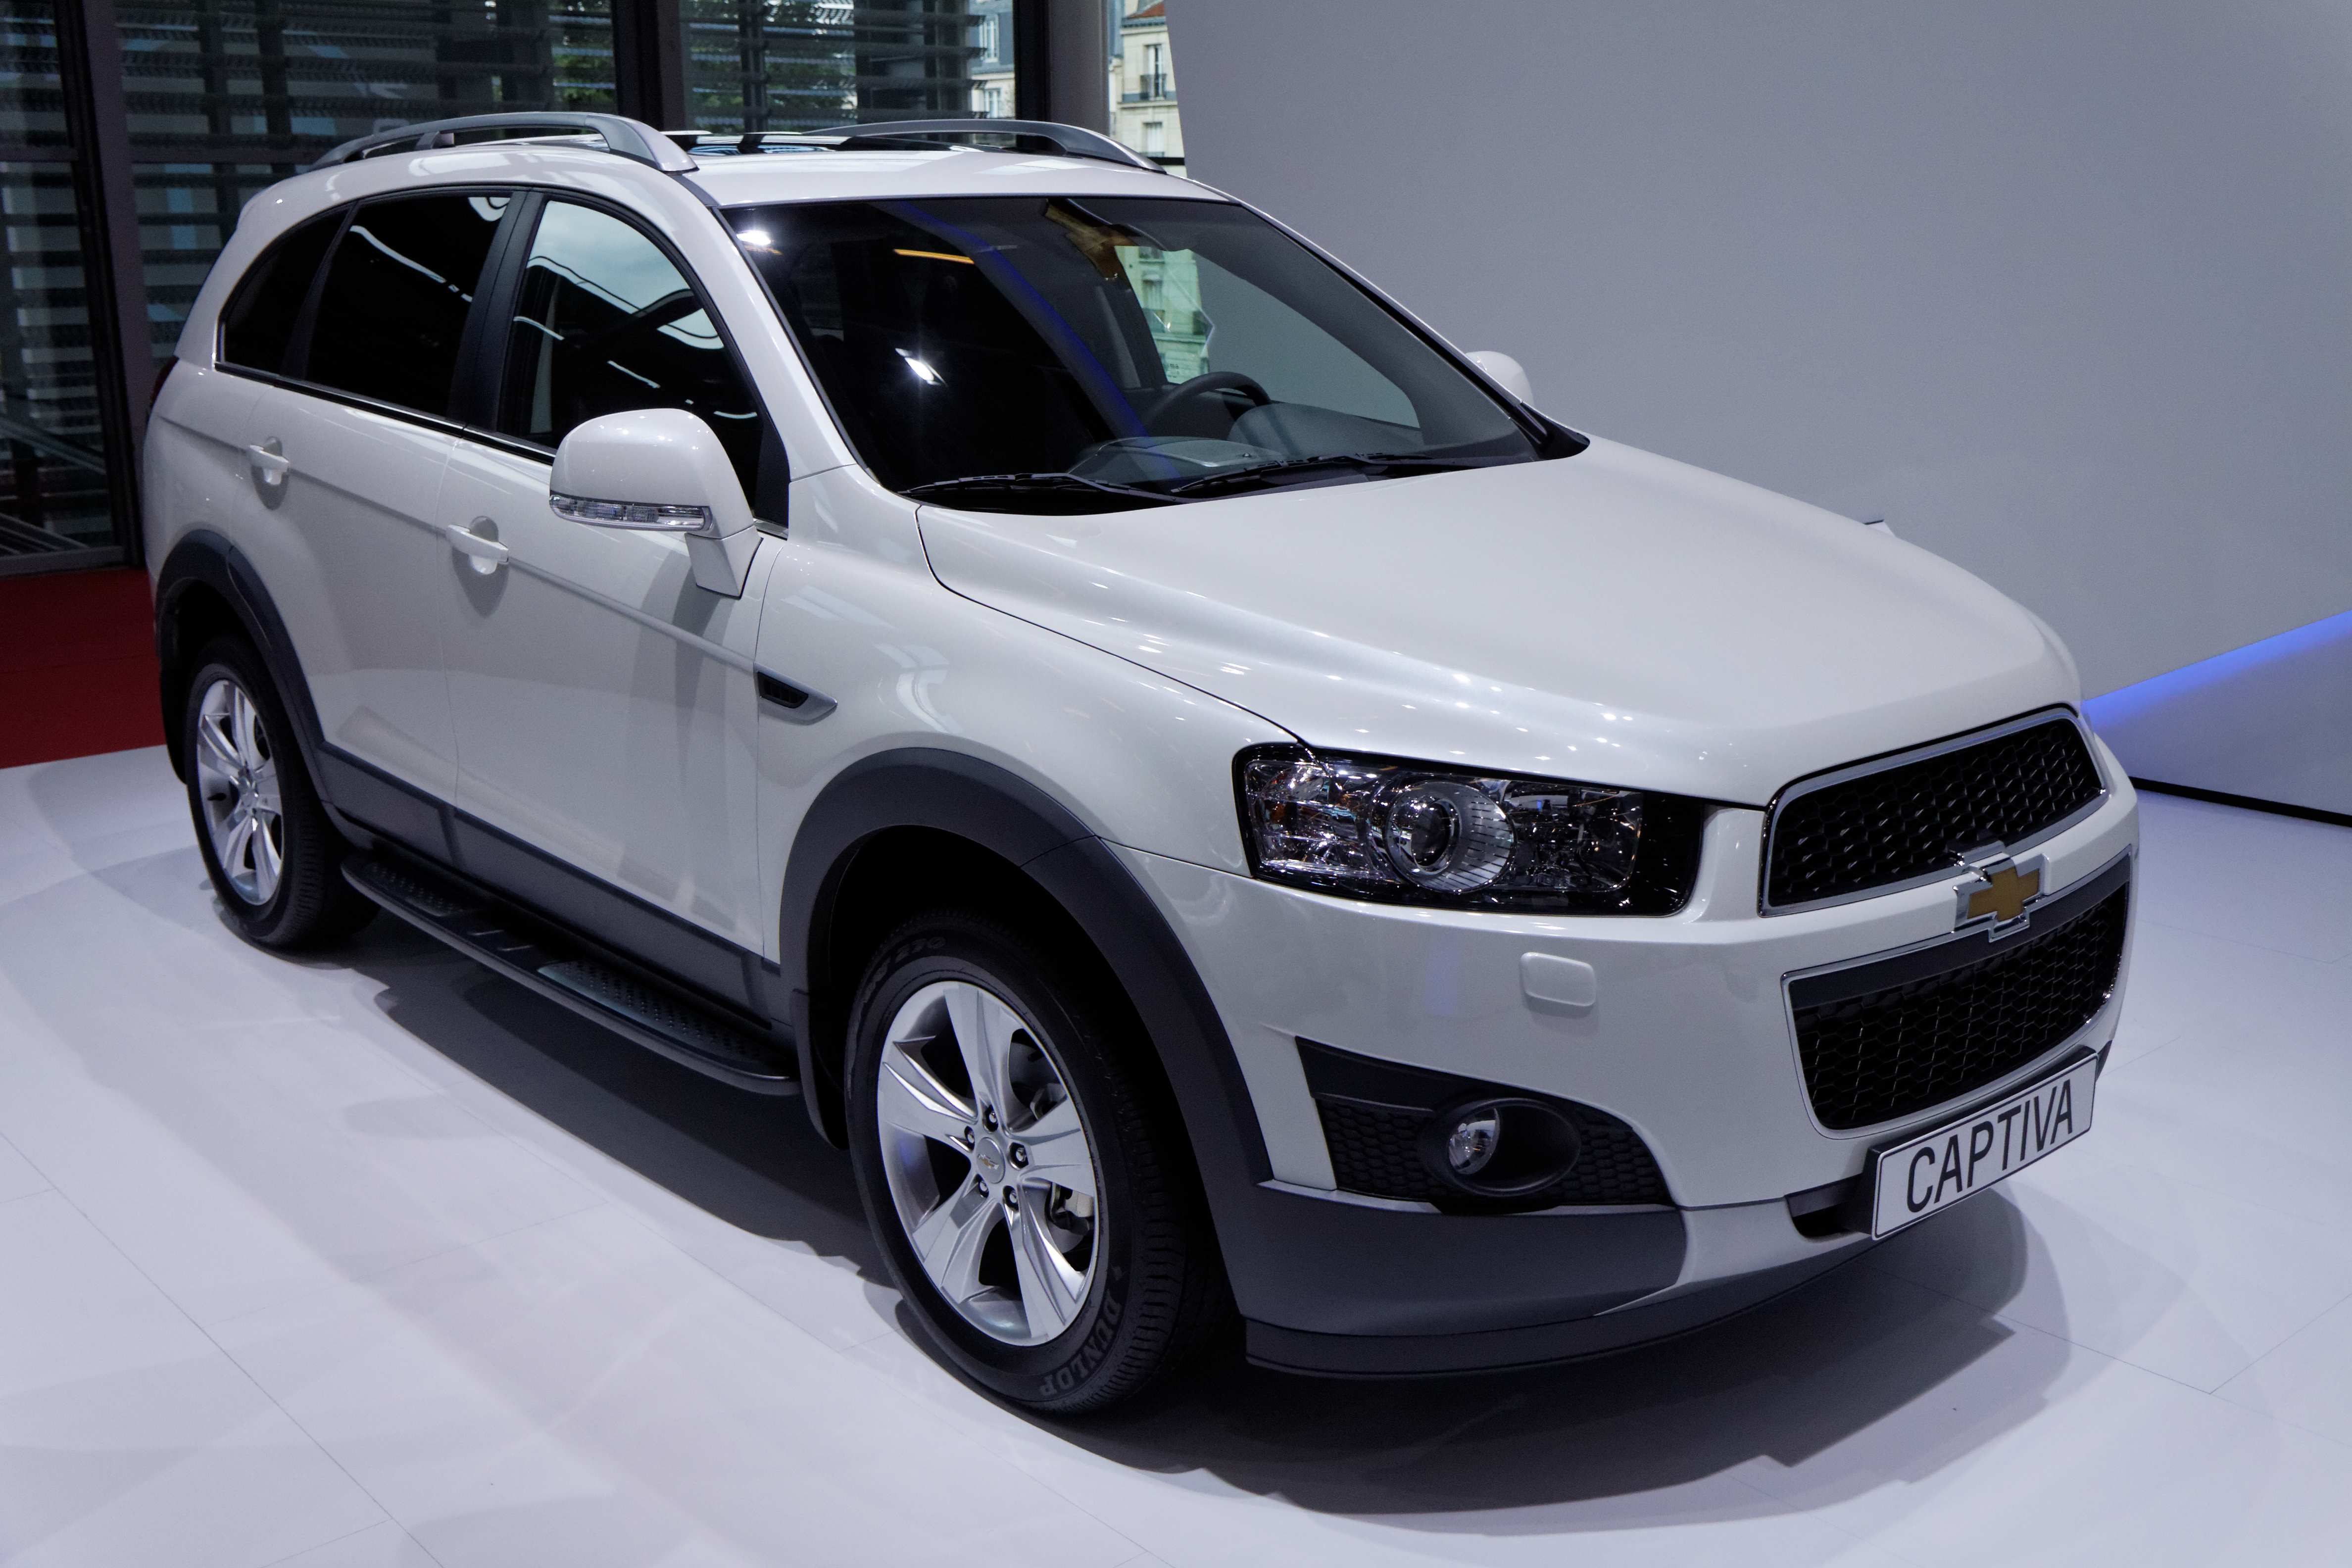 22 The Chevrolet Captiva 2020 Ficha Tecnica Exterior with Chevrolet Captiva 2020 Ficha Tecnica